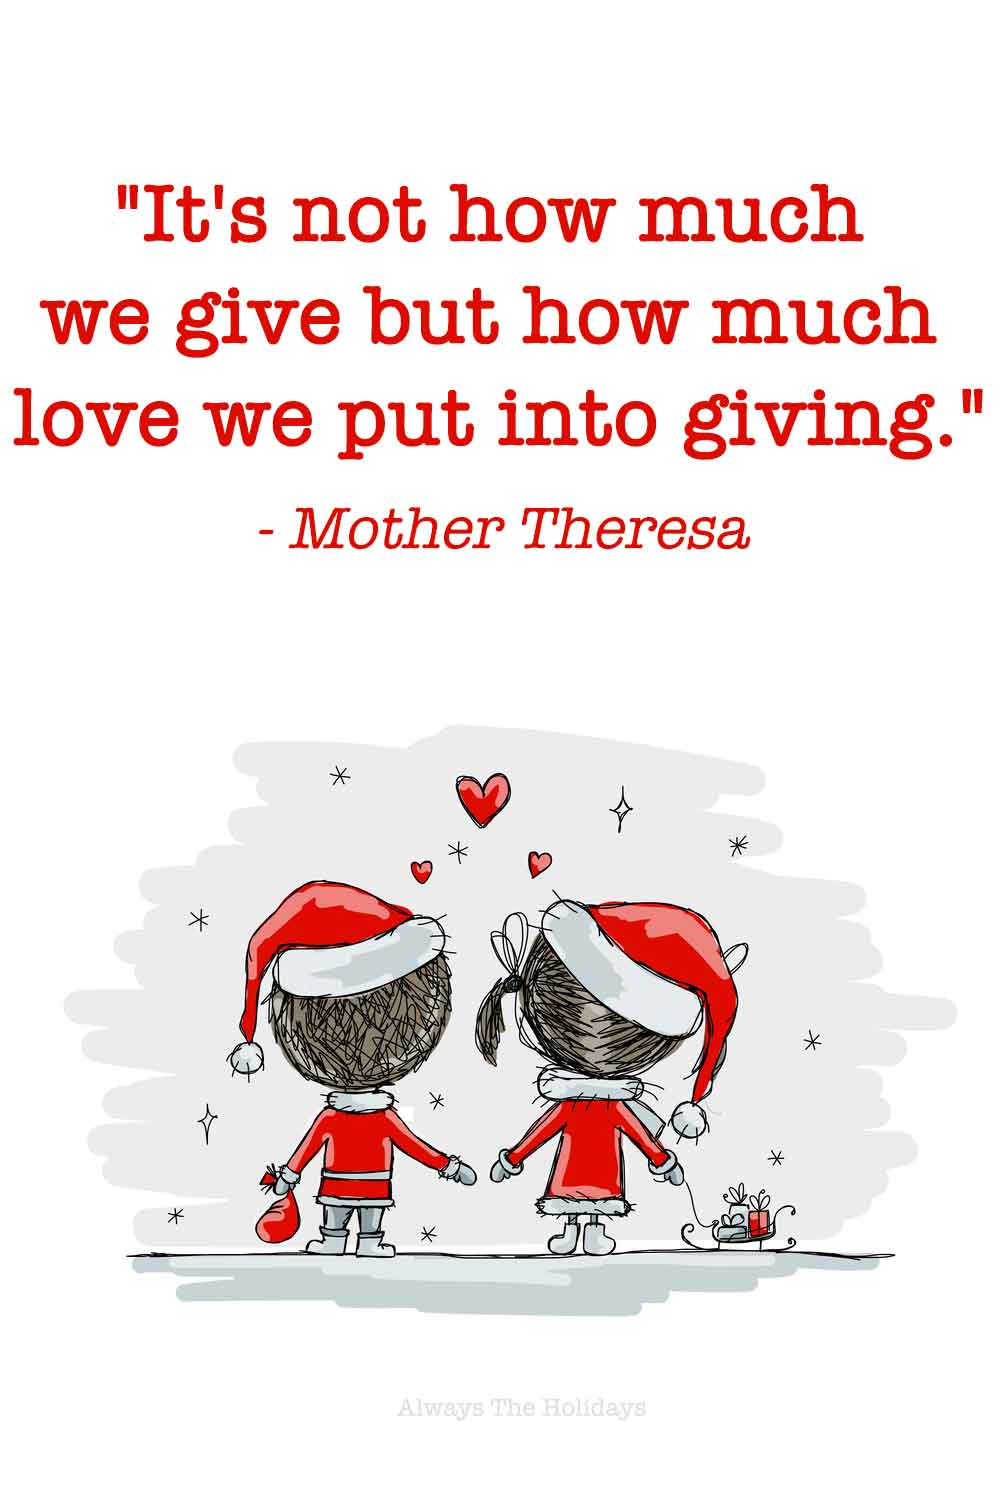 Two cartoon people dressed in Santa outfits holding hands with a text overlay of Christmas giving quotes.